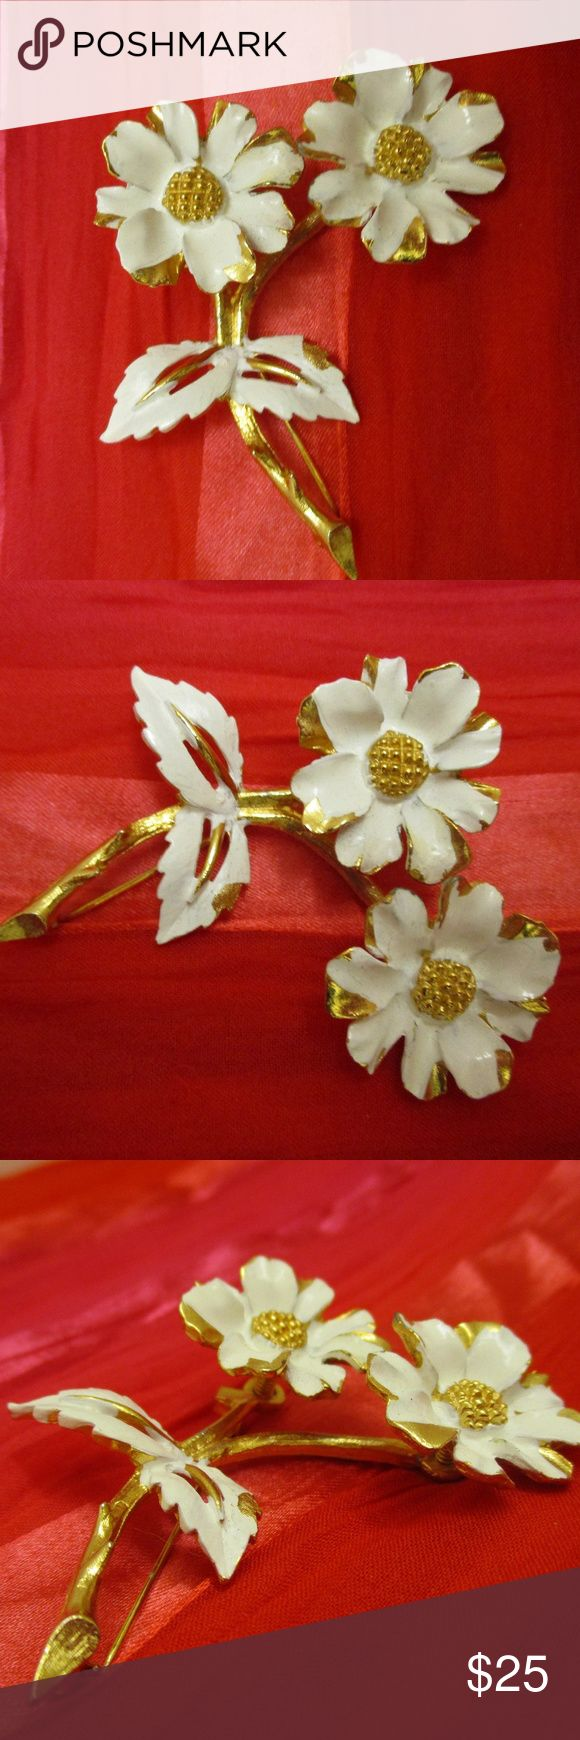 """Vintage White Gold Signed Floral Trembler Brooch Wonderful 1970s smooth and textured gold tone metal flower trembler brooch accented with white enamel.  This outstanding en tremblant has daisy style flowers set on springs that make flowers jiggle and bounce with every movement ~ thus the term TREMBLER or en tremblant. Enamel is for accent only and not intended to cover entire surface.  Signed but not readable. 2 1/2"""" x 2"""" x 3/4"""" deep. Secure rollover clasp. Charming gift for her. EUC  23g…"""